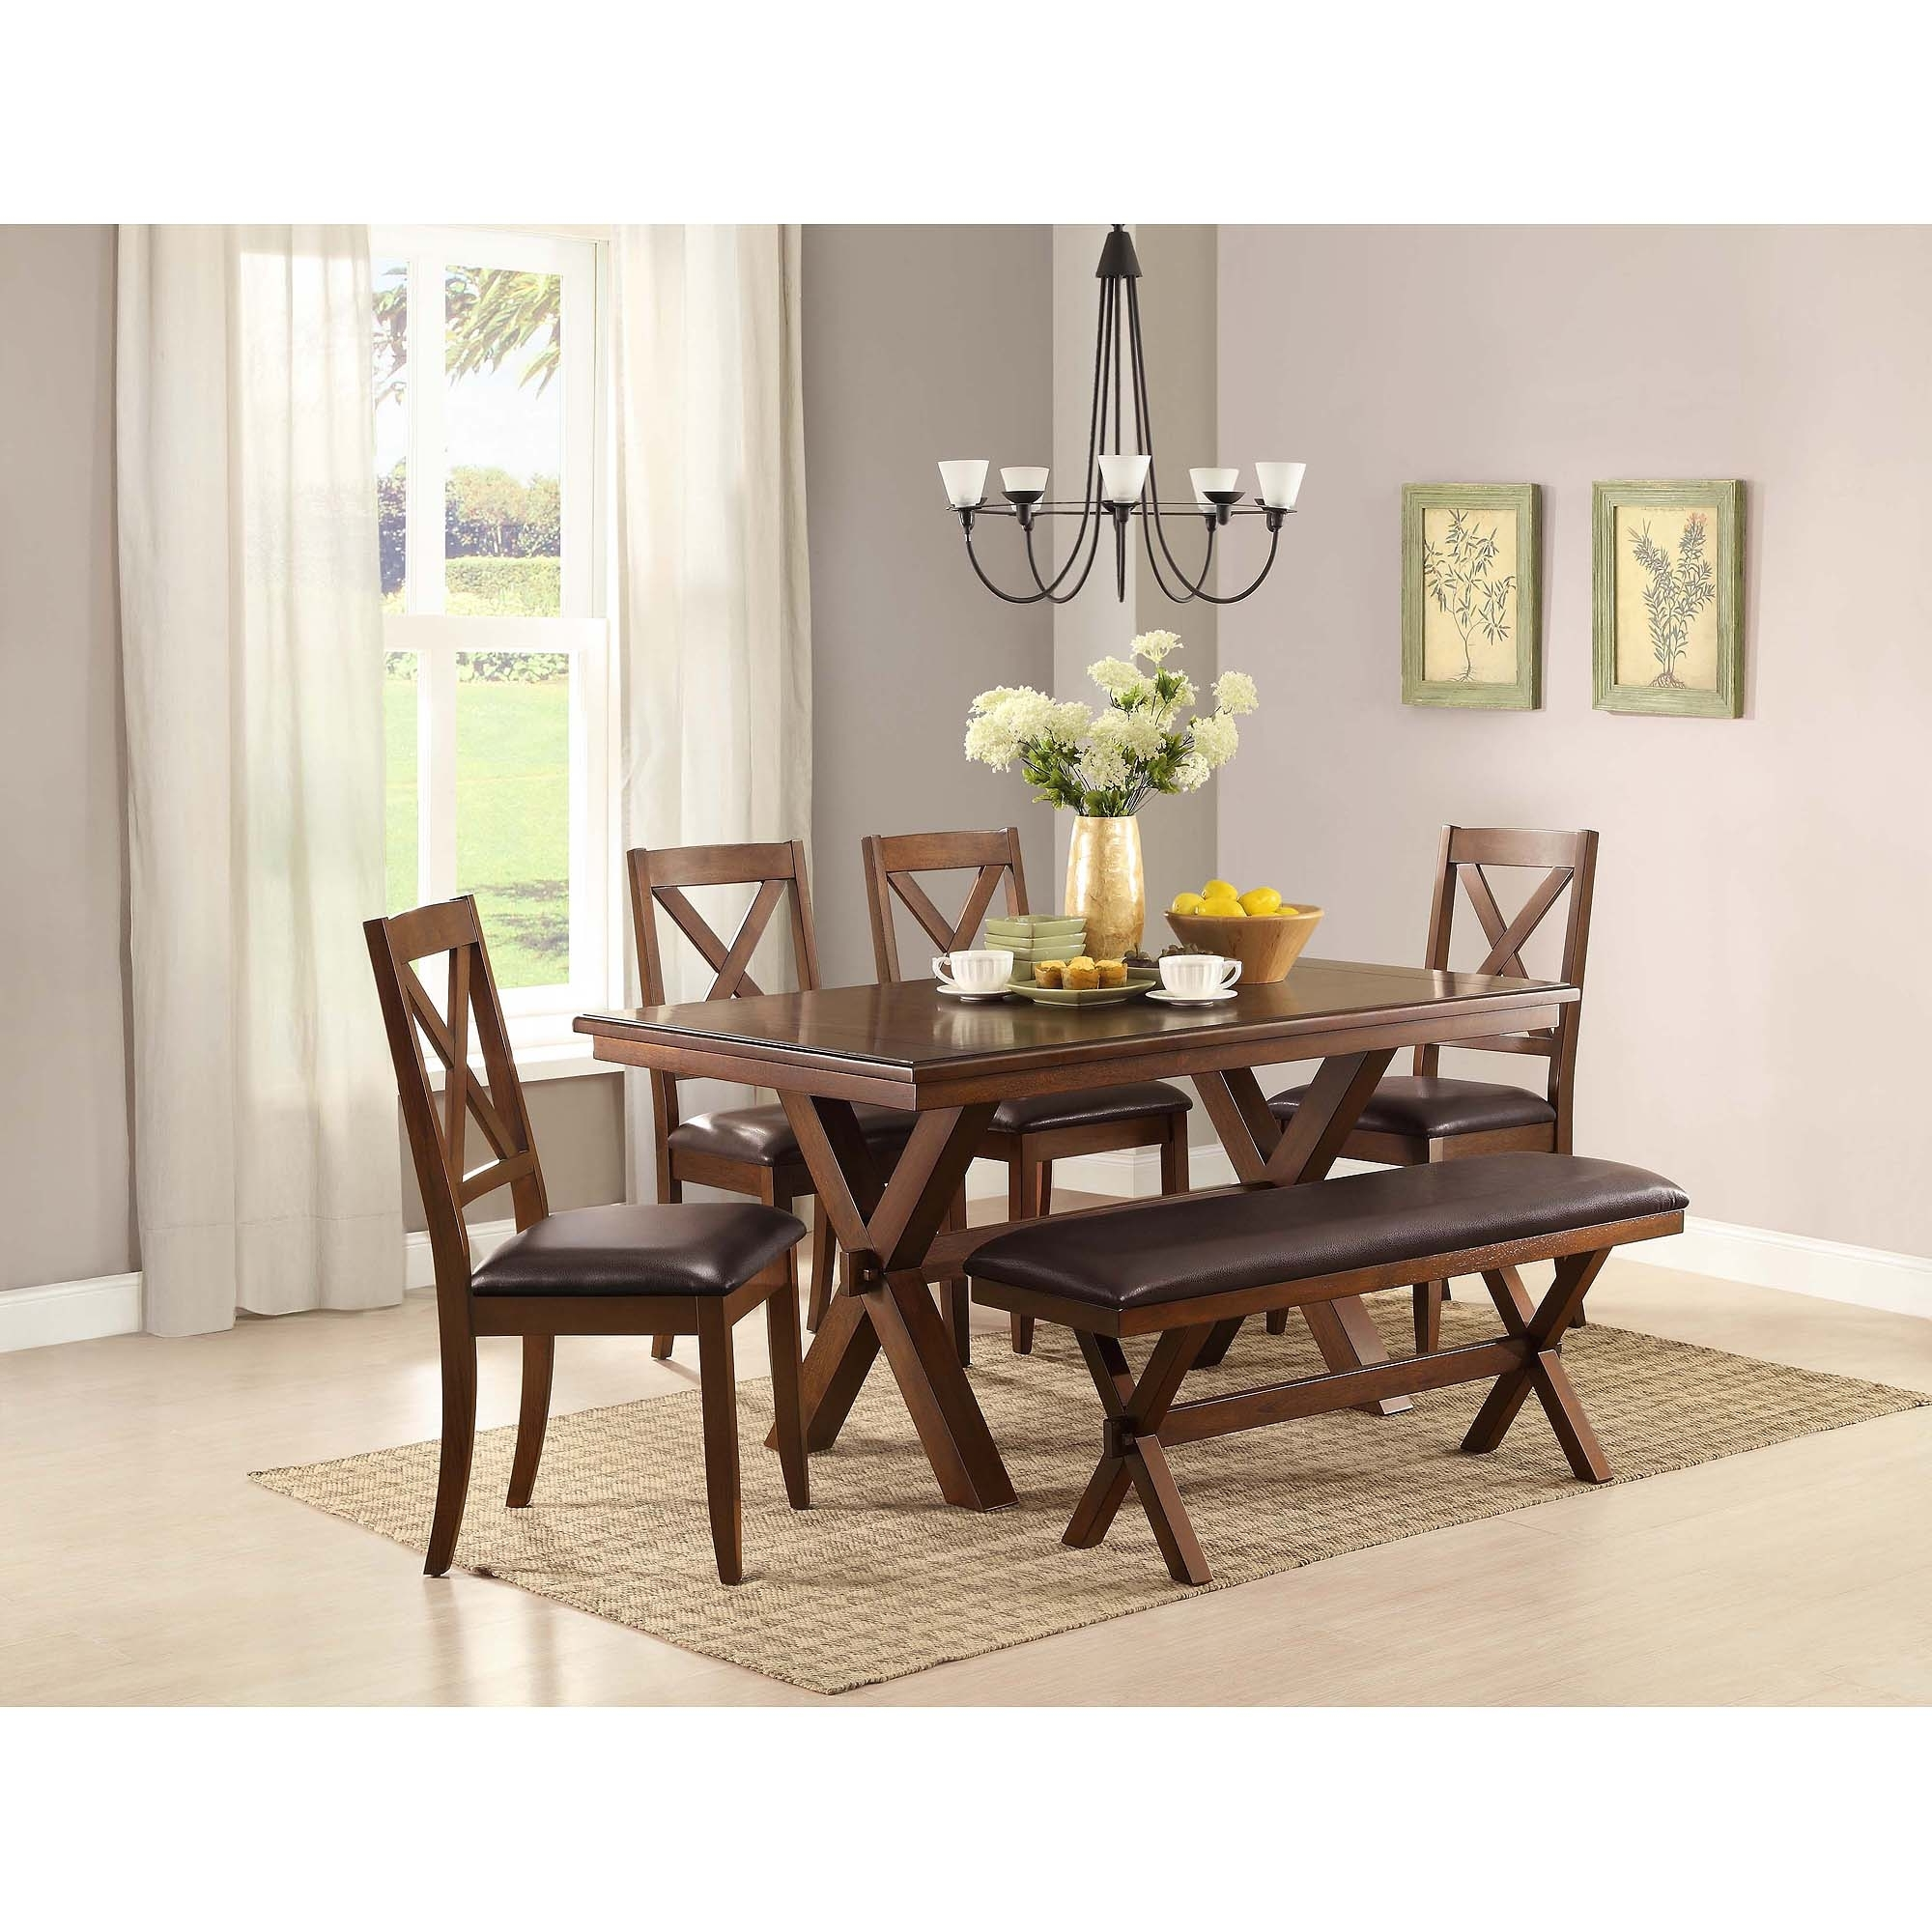 Dark Wood Dining Tables And 6 Chairs Pertaining To Fashionable Better Homes & Gardens Maddox Crossing Dining Table, Brown – Walmart (Gallery 21 of 25)